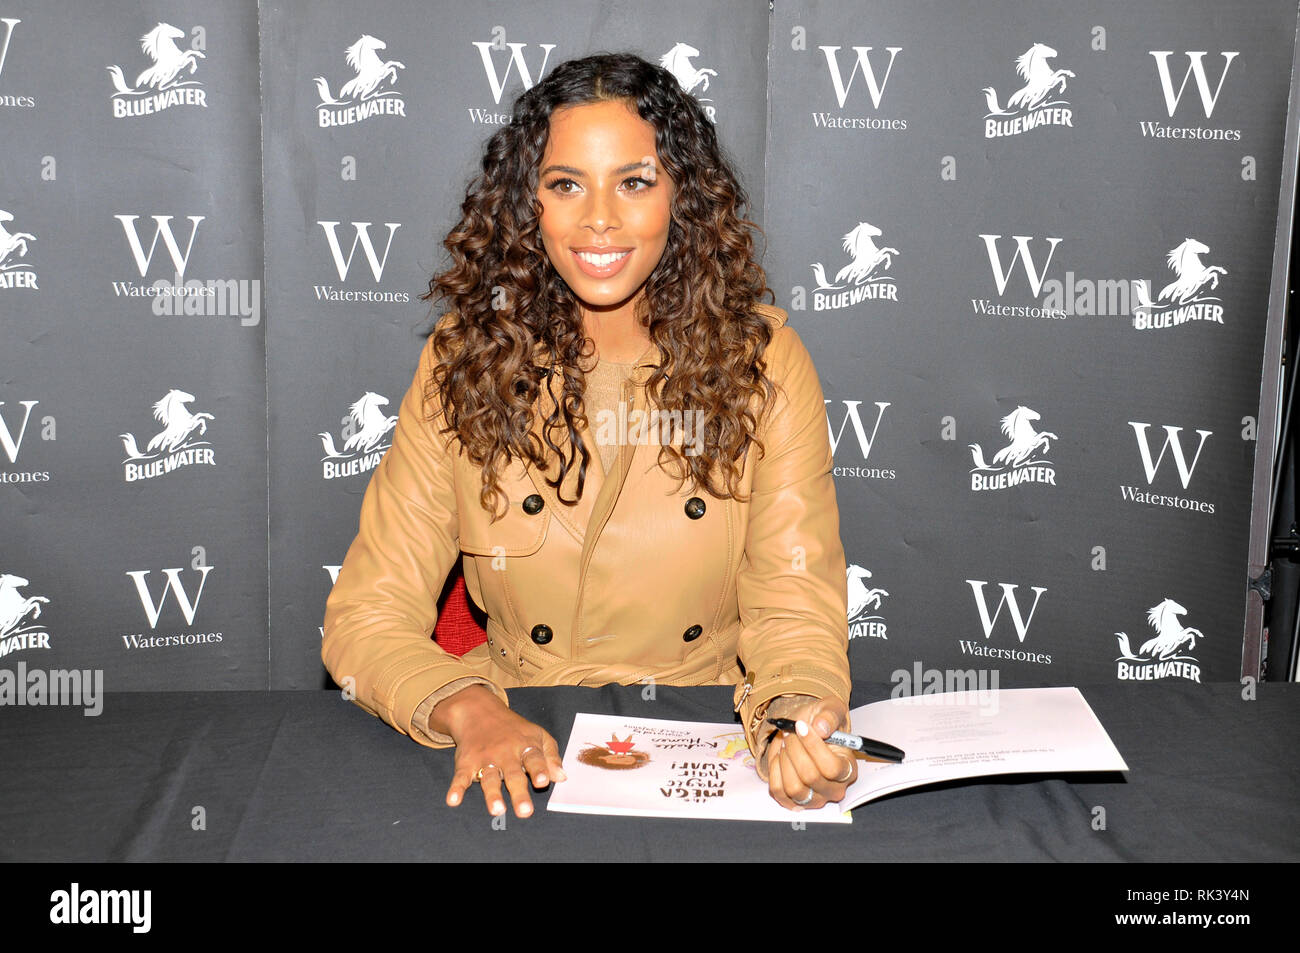 Greenhithe, Kent. United Kingdom.  9th February, 2019. Rochelle Humes at a signing of her debut children's book, 'The Mega Magic Hair Swap' at Waterstones,  Bluewater Shopping Centre, Greenhithe, Kent.   Sue Andrews/Alamy Live News. - Stock Image